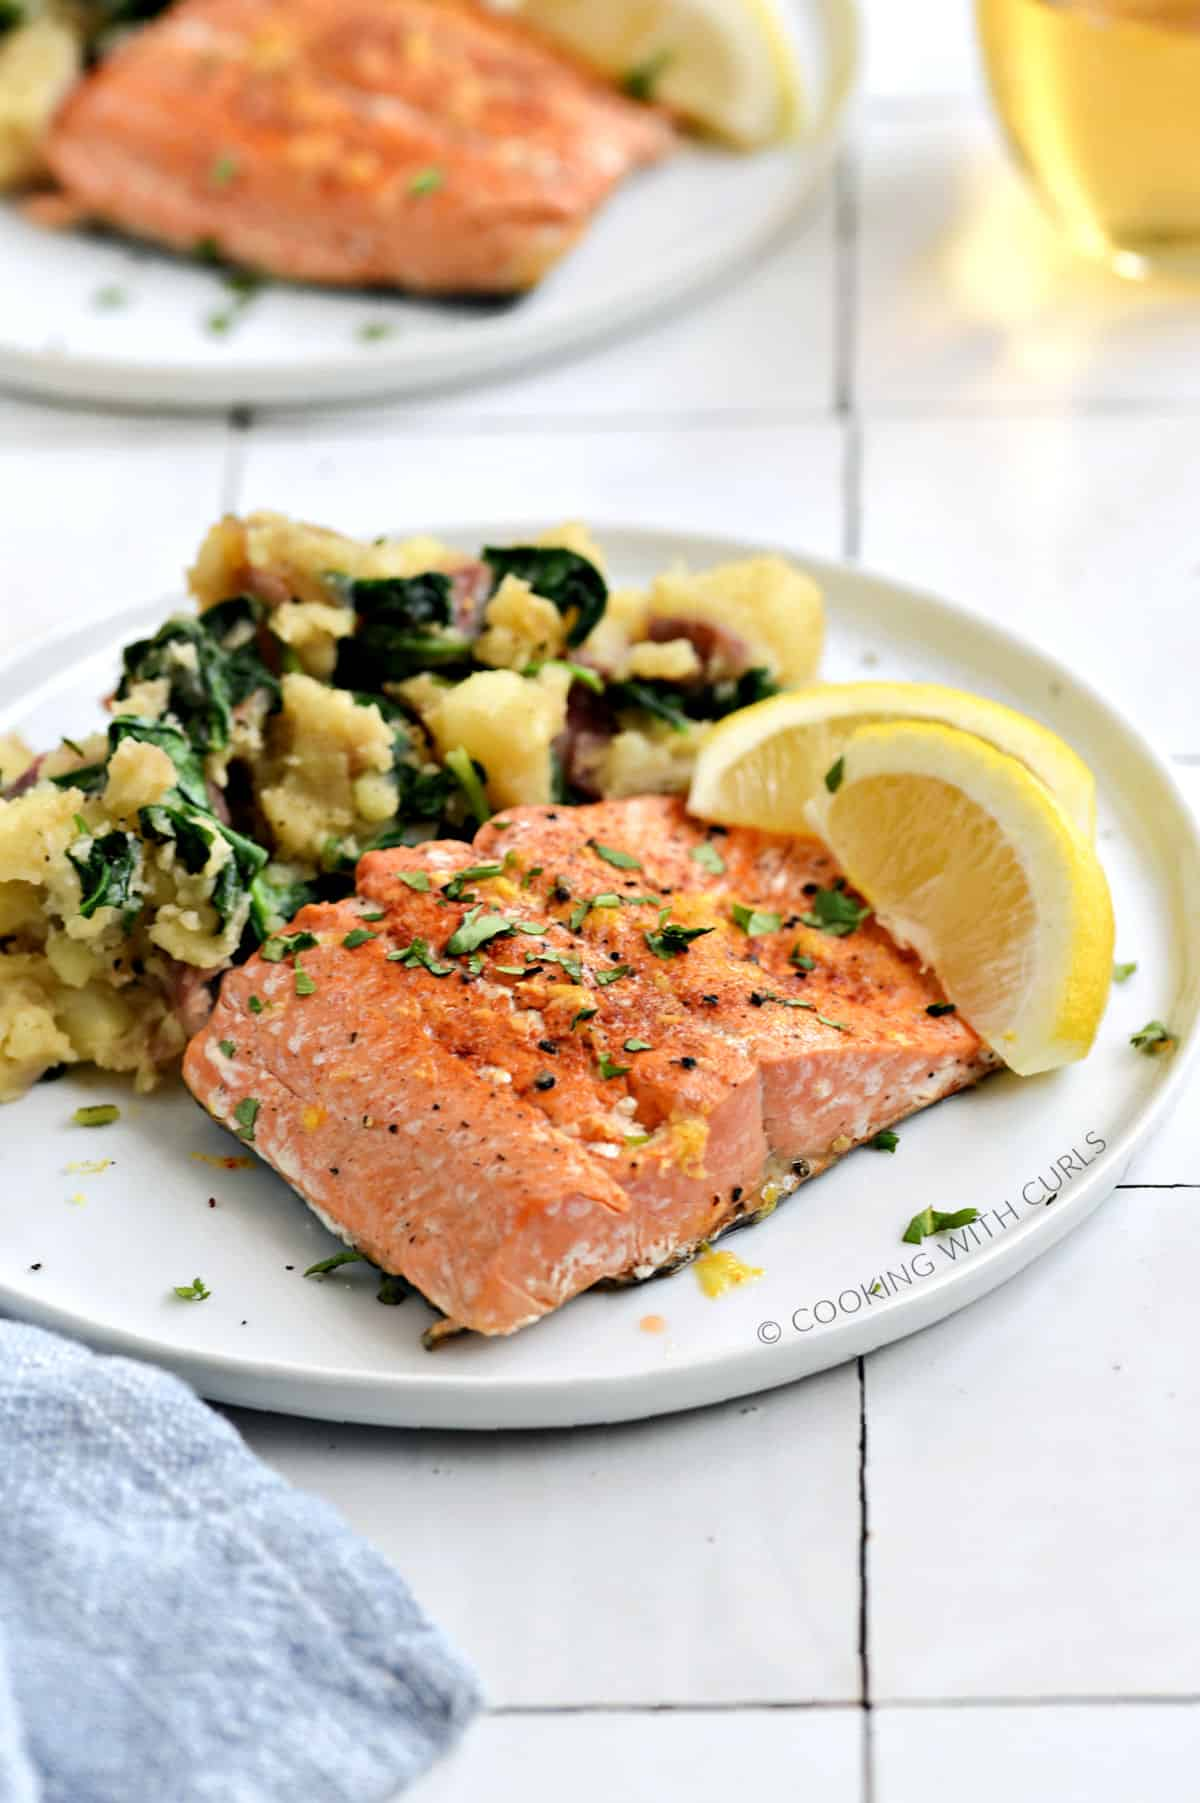 A salmon filet and mashed potatoes mixed with baby spinach on a white plate with two lemon wedges.